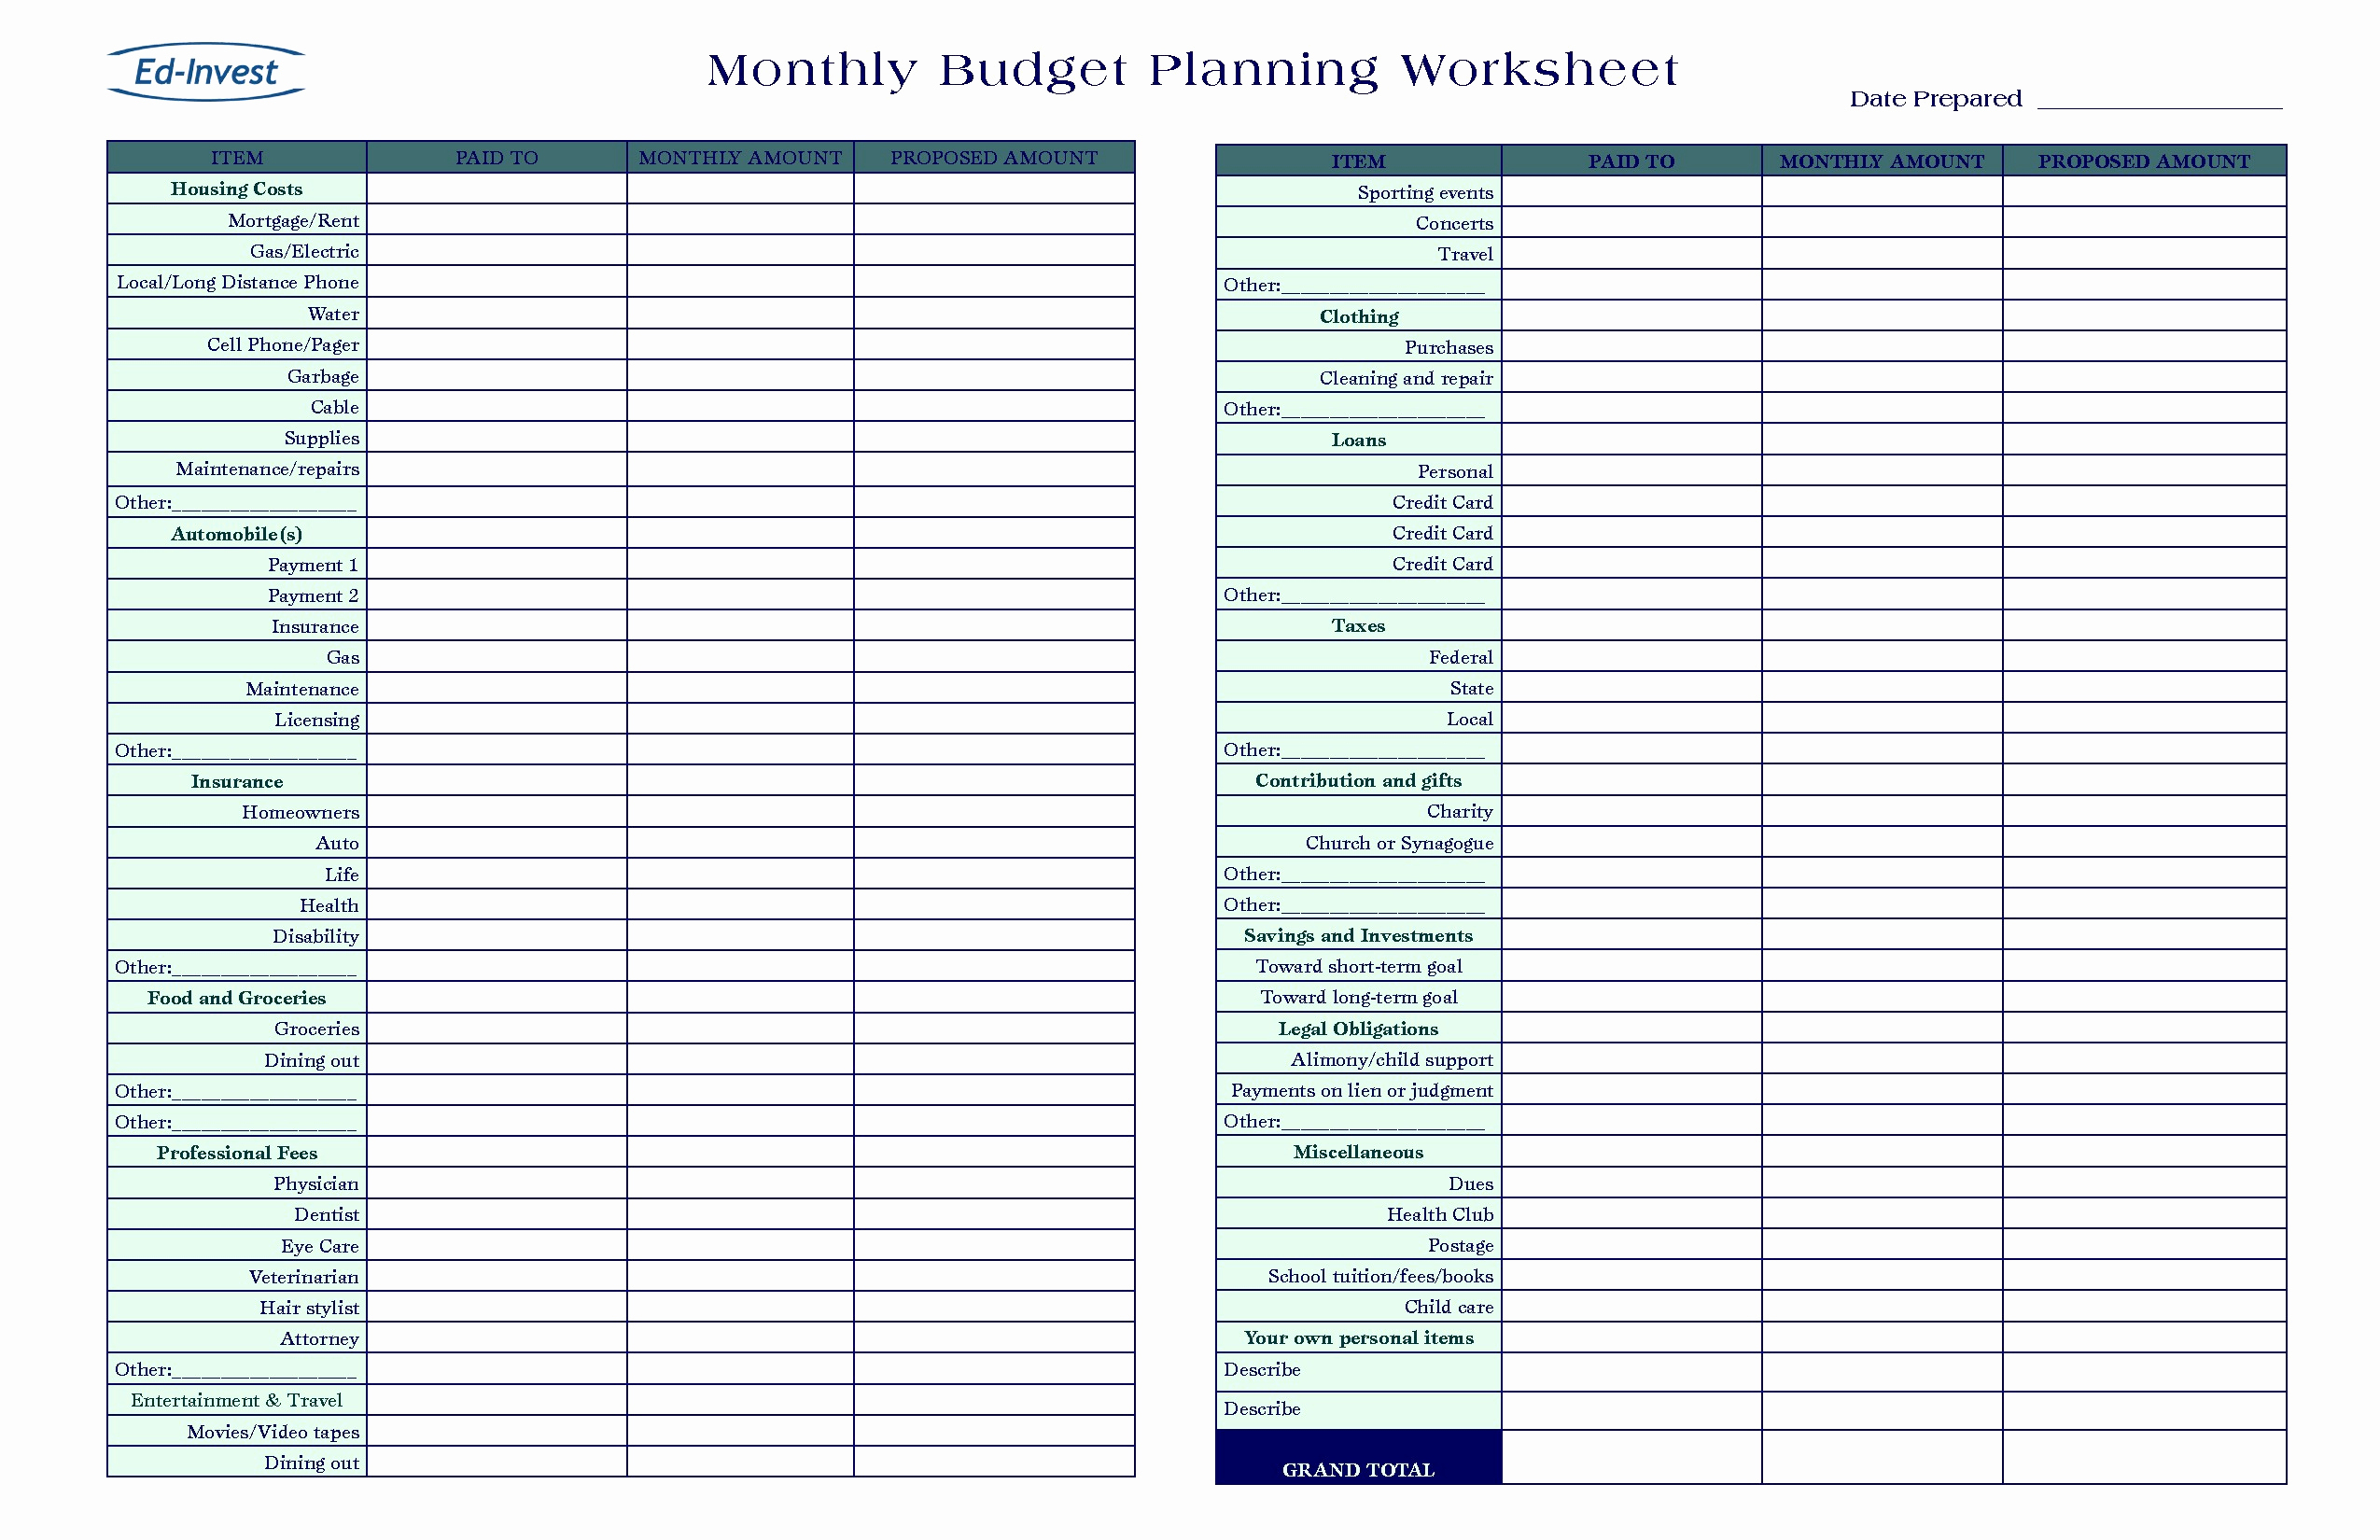 Bookkeeping Spreadsheet Using Microsoft Excel Inspirational Business Intended For Bookkeeping Spreadsheet Using Microsoft Excel